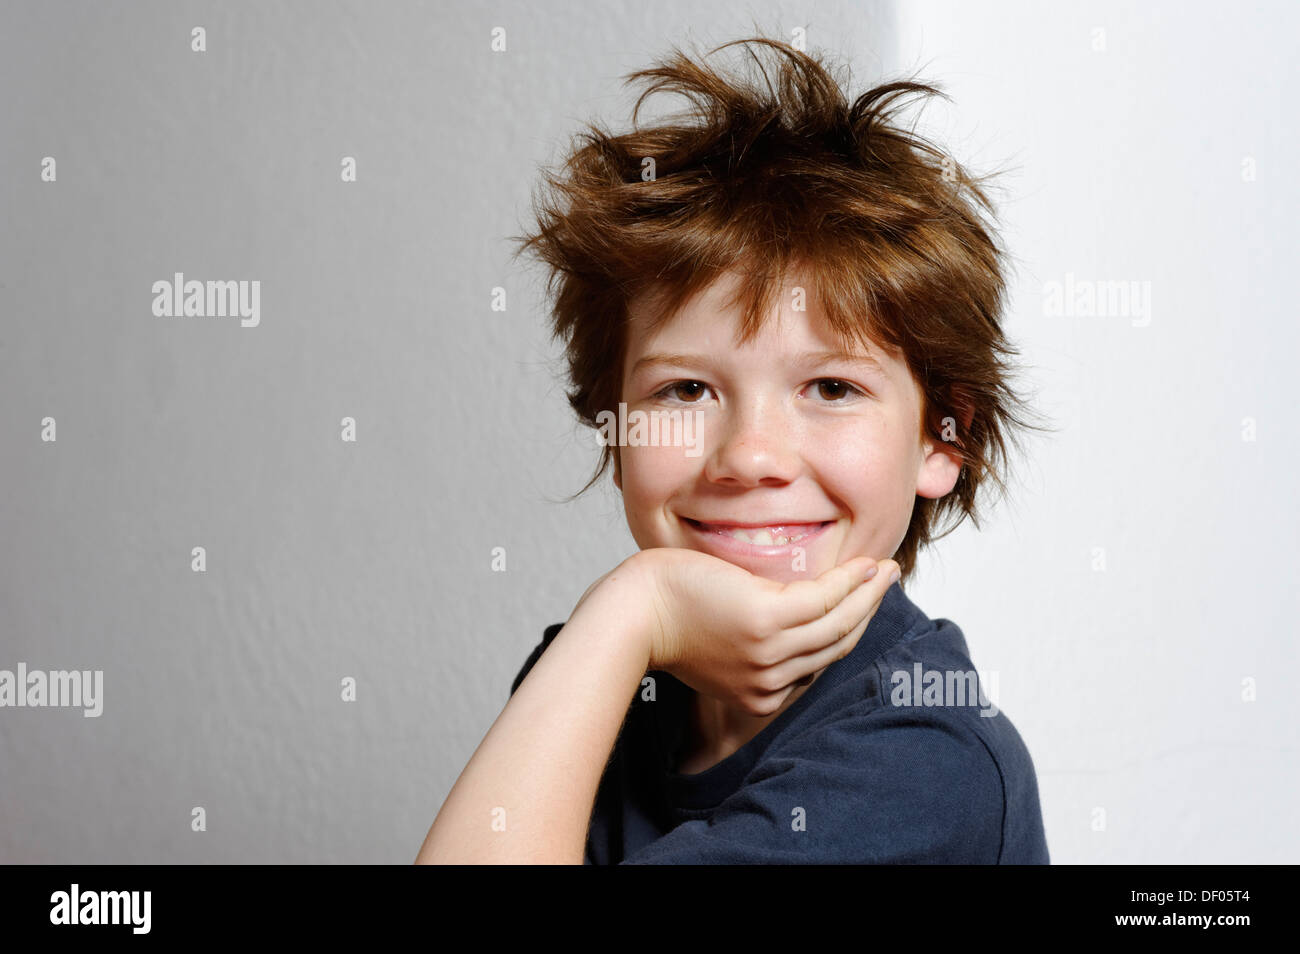 Boy, 12 years old, with tousled hair - Stock Image